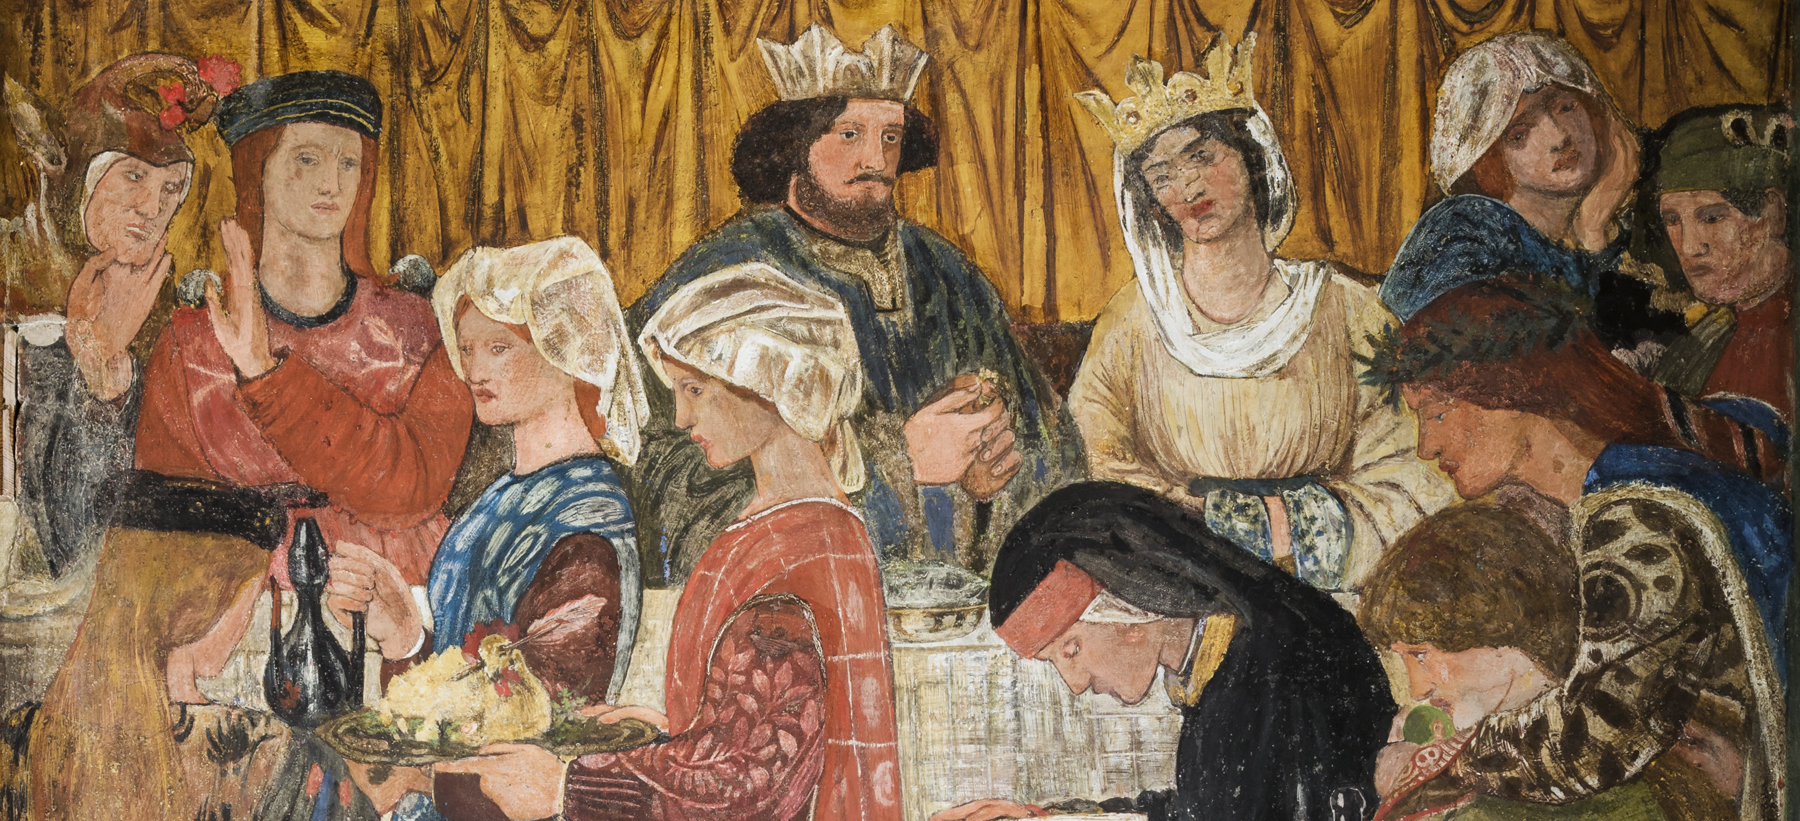 Drawing room mural at Red House, painted by Morris himself and his friends, Dante Gabriel Rossetti and Edward Burne-Jones for William Morris's first married home